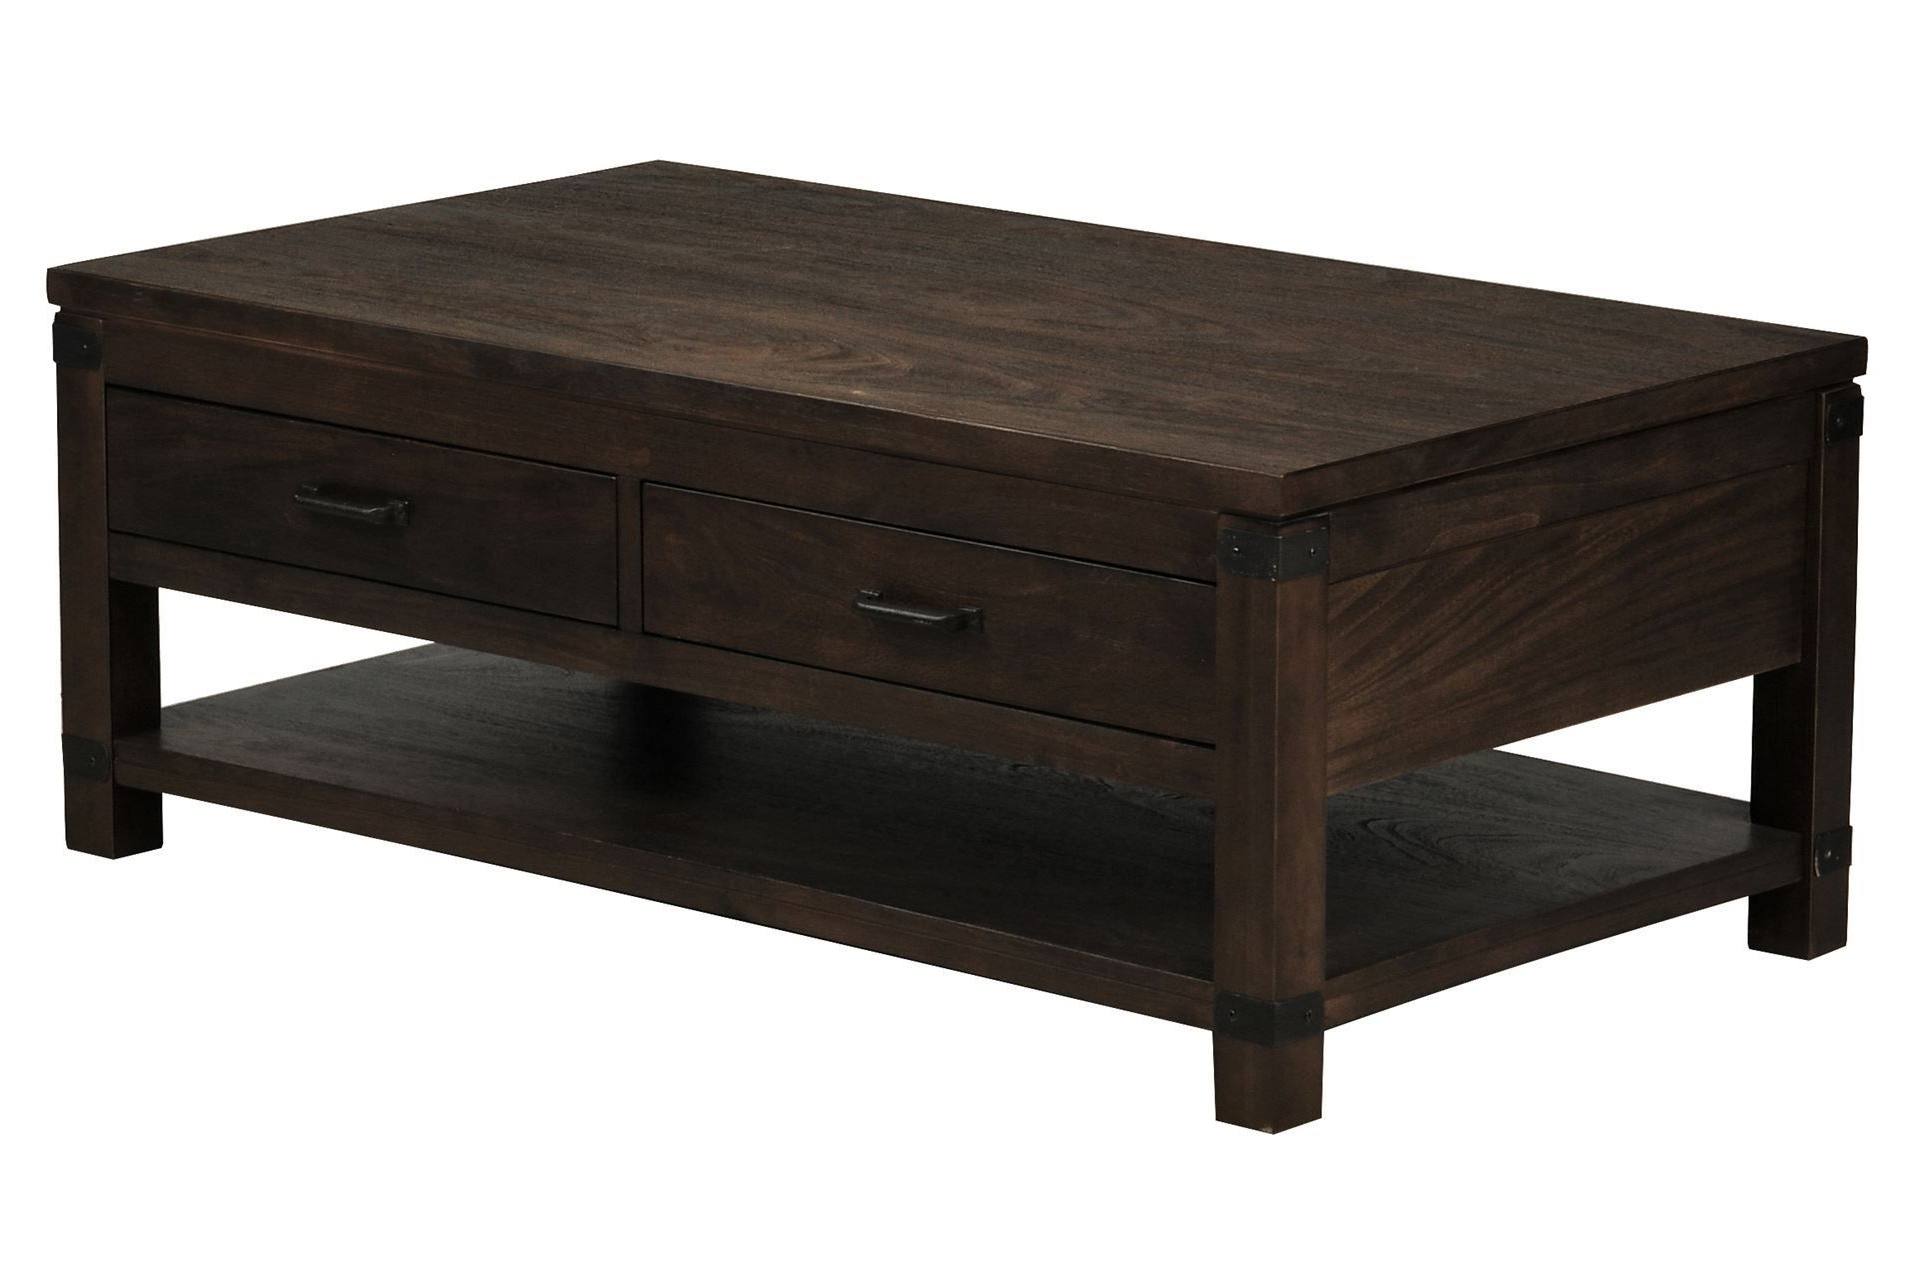 Recent Kelvin Lift Top Cocktail Tables Within Livingston Cocktail Table W/drawers, Brown, Coffee Tables (View 10 of 20)